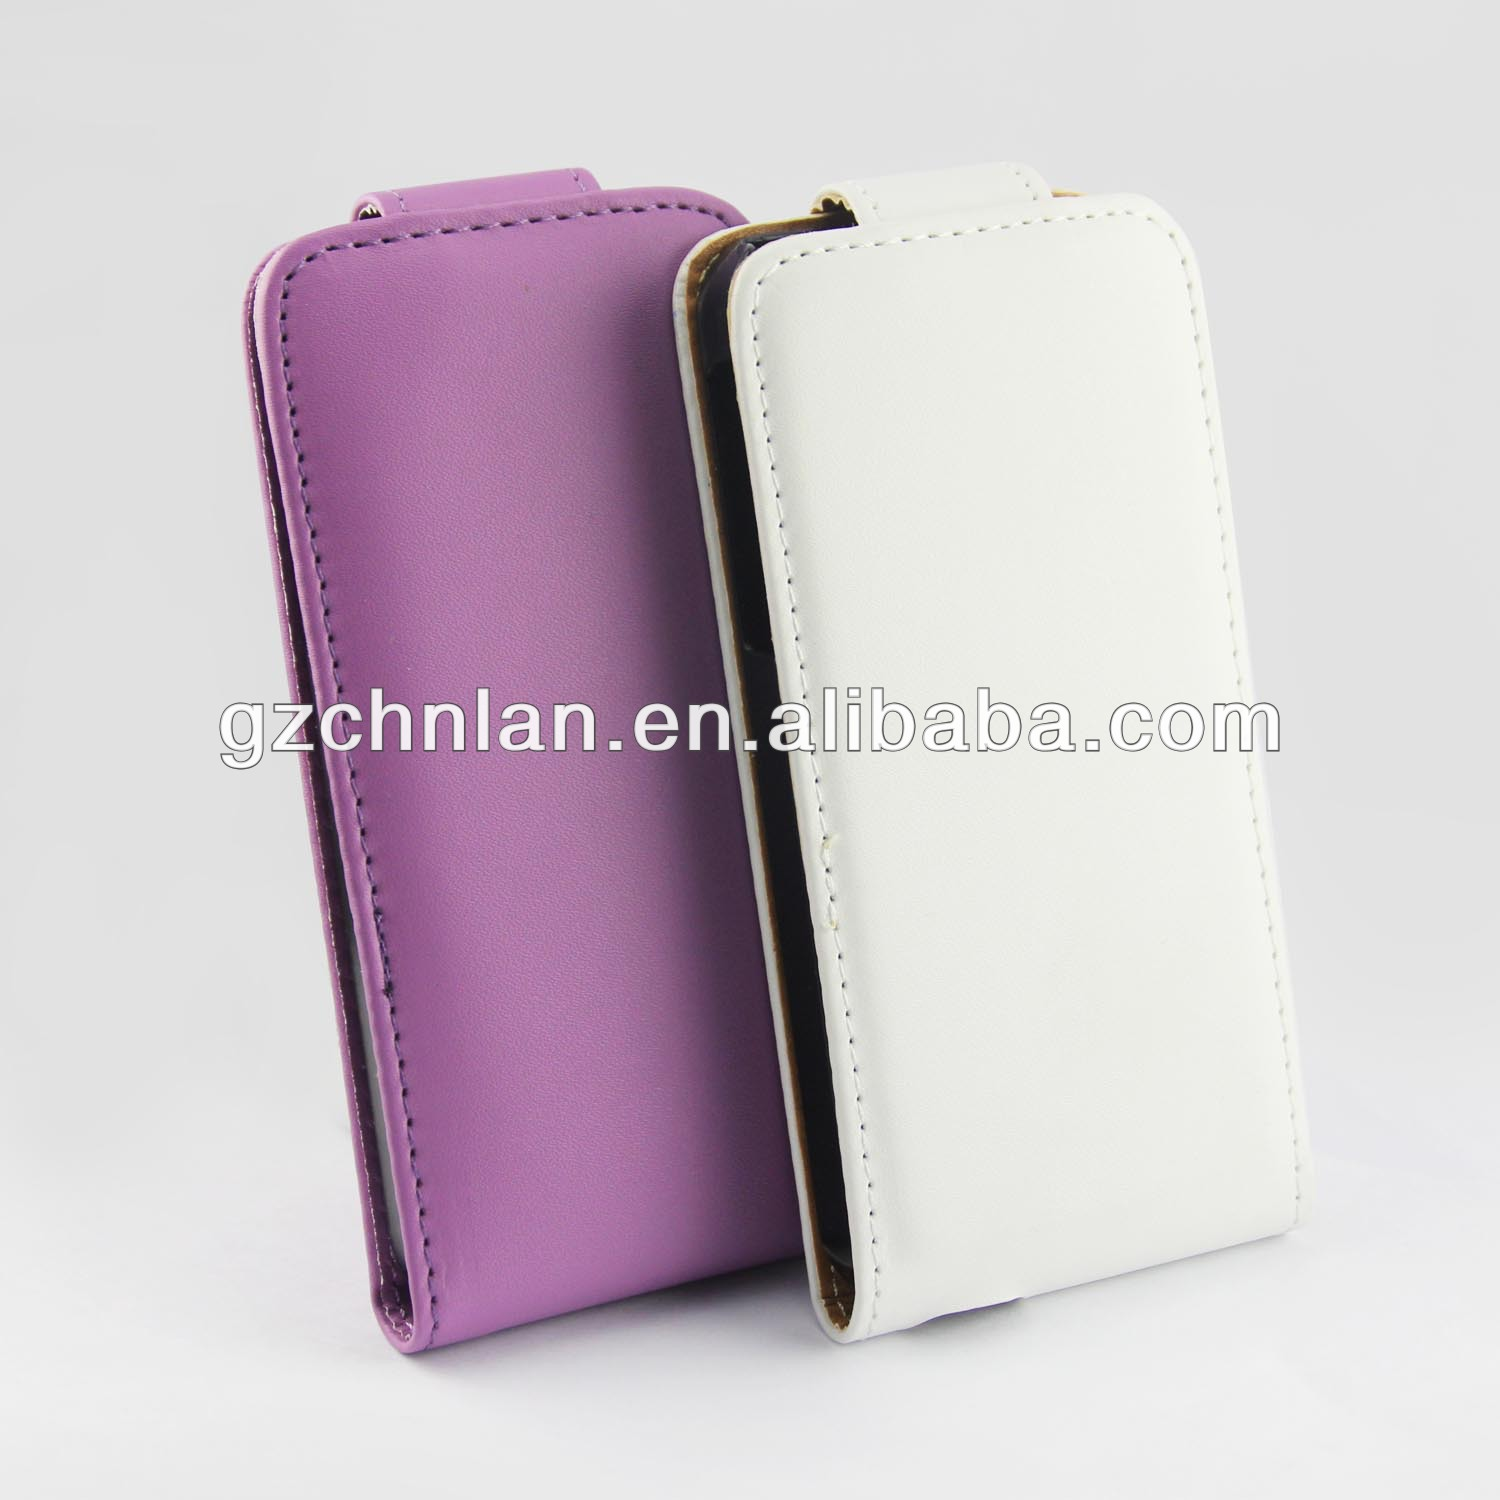 Cell phone accessories for iphone 5c Leather flip cover